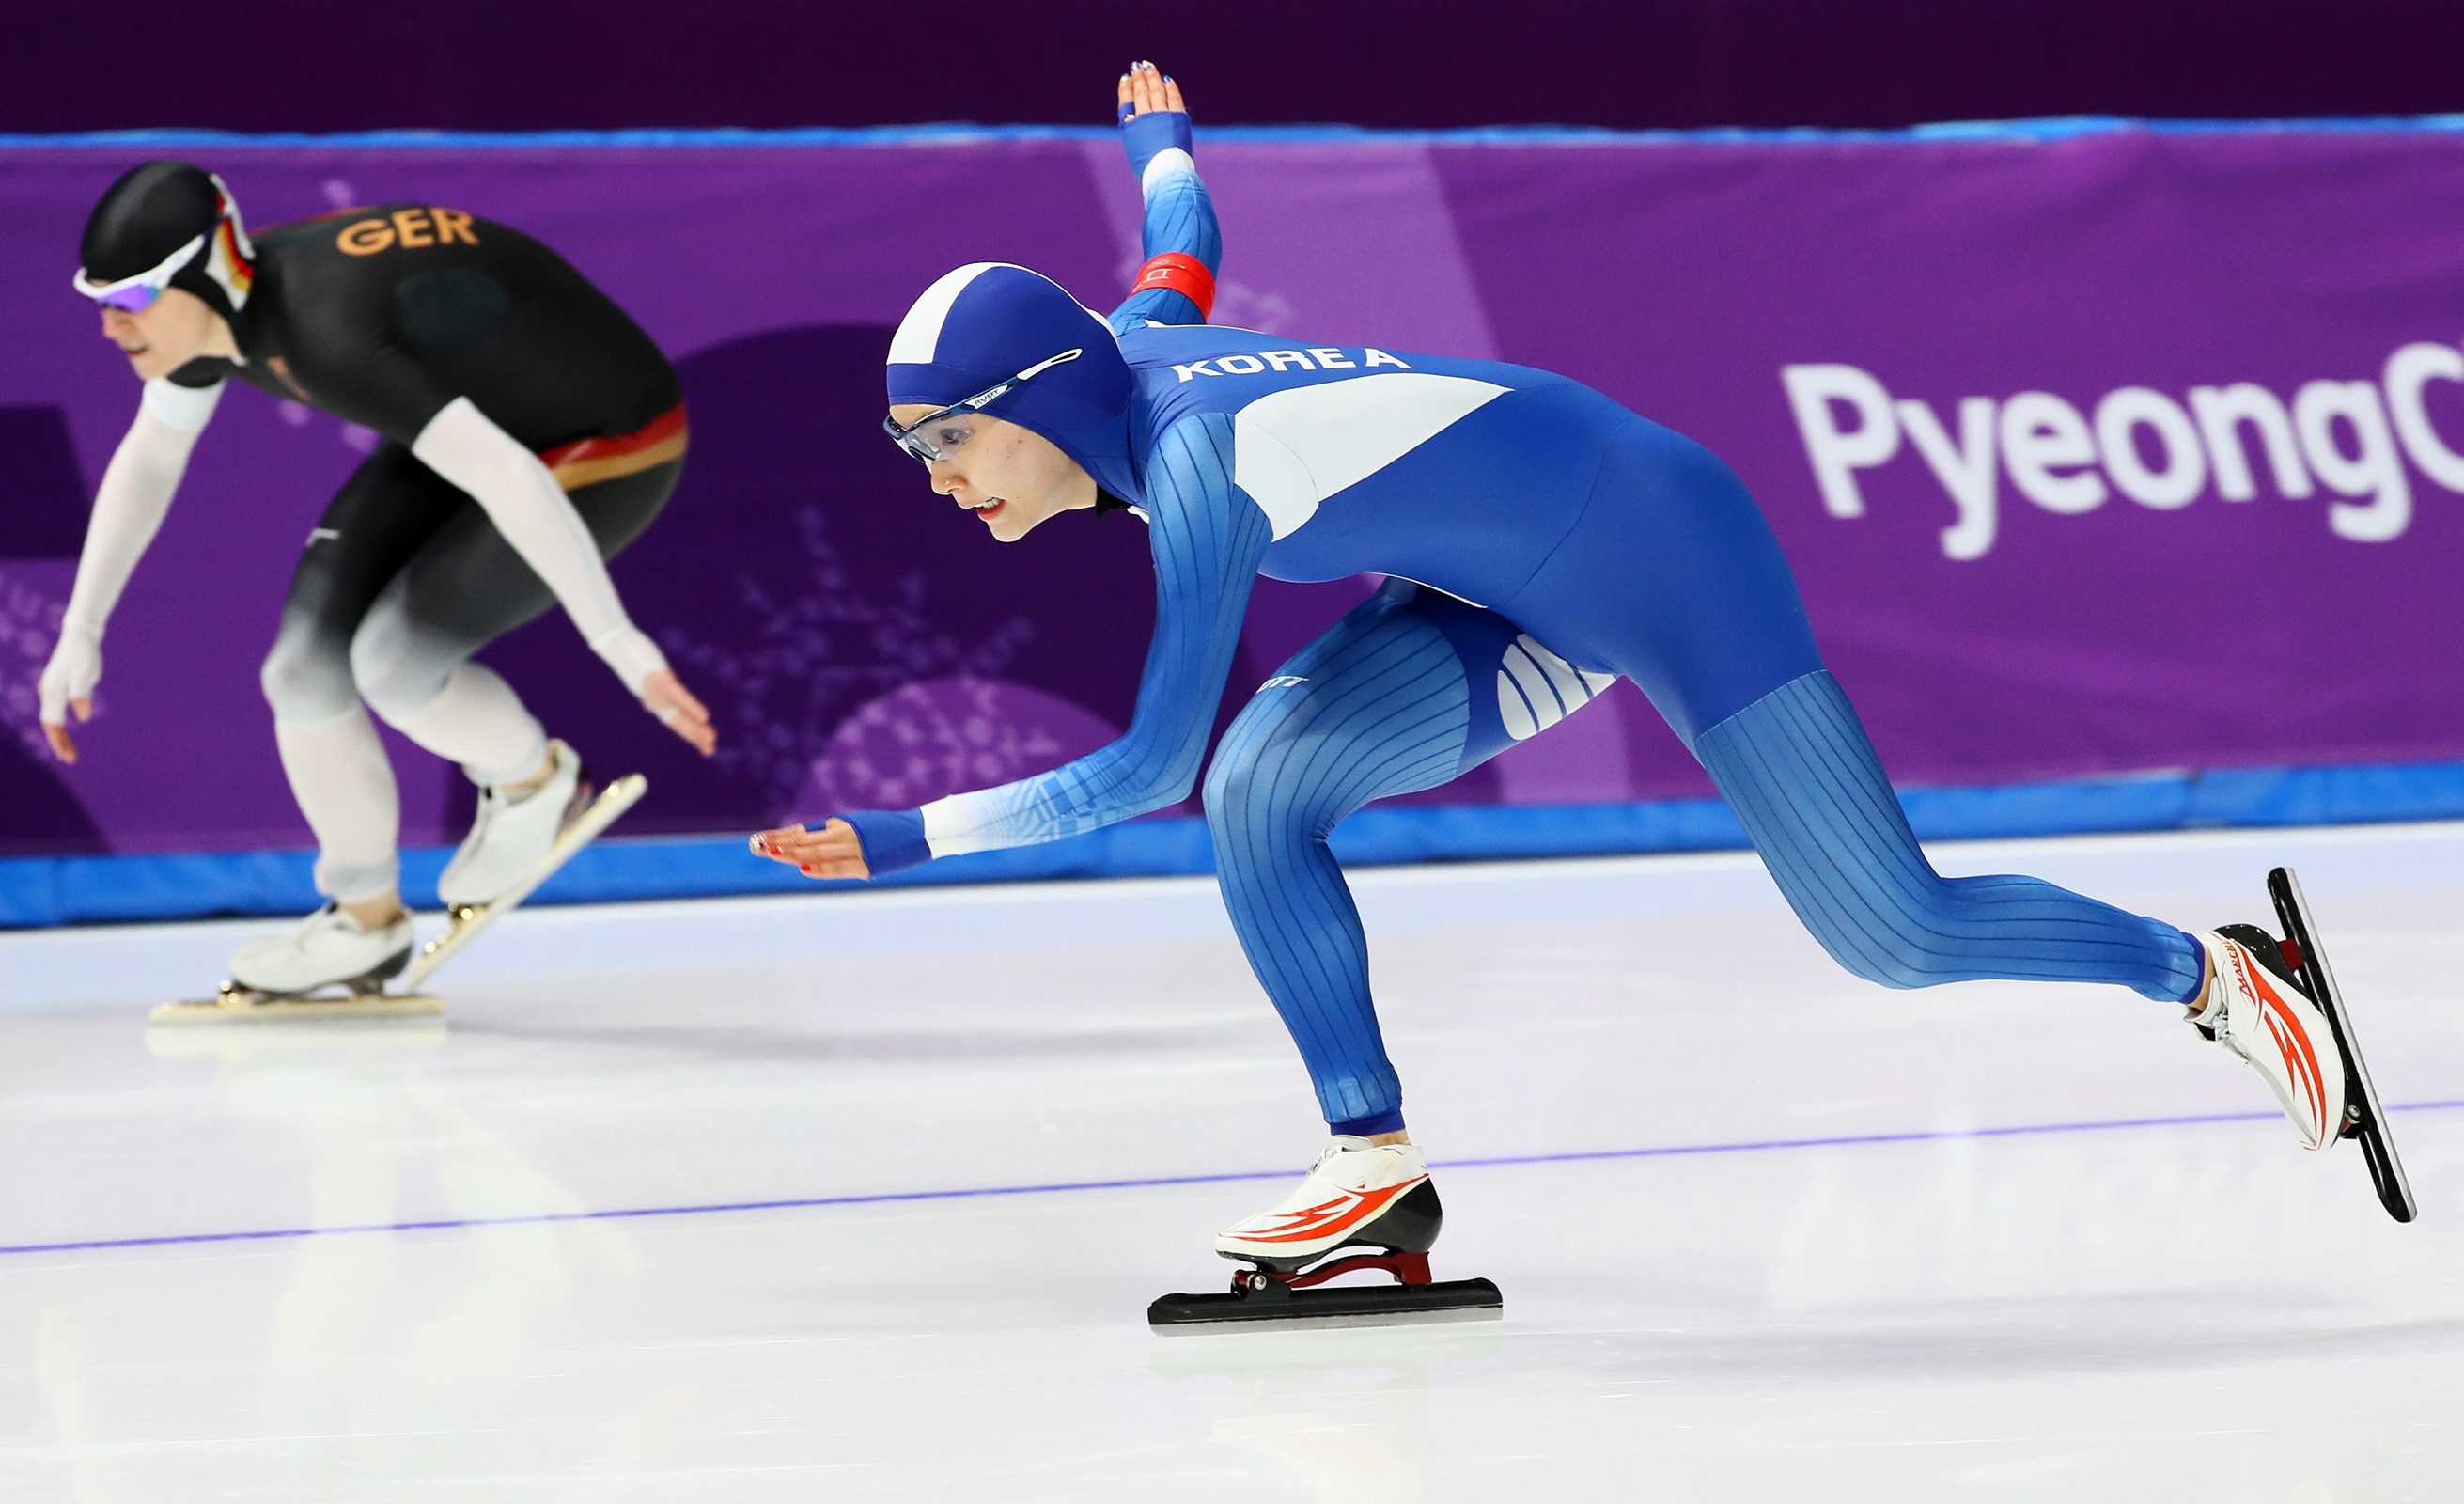 Speed Skating - Ladies' 500m